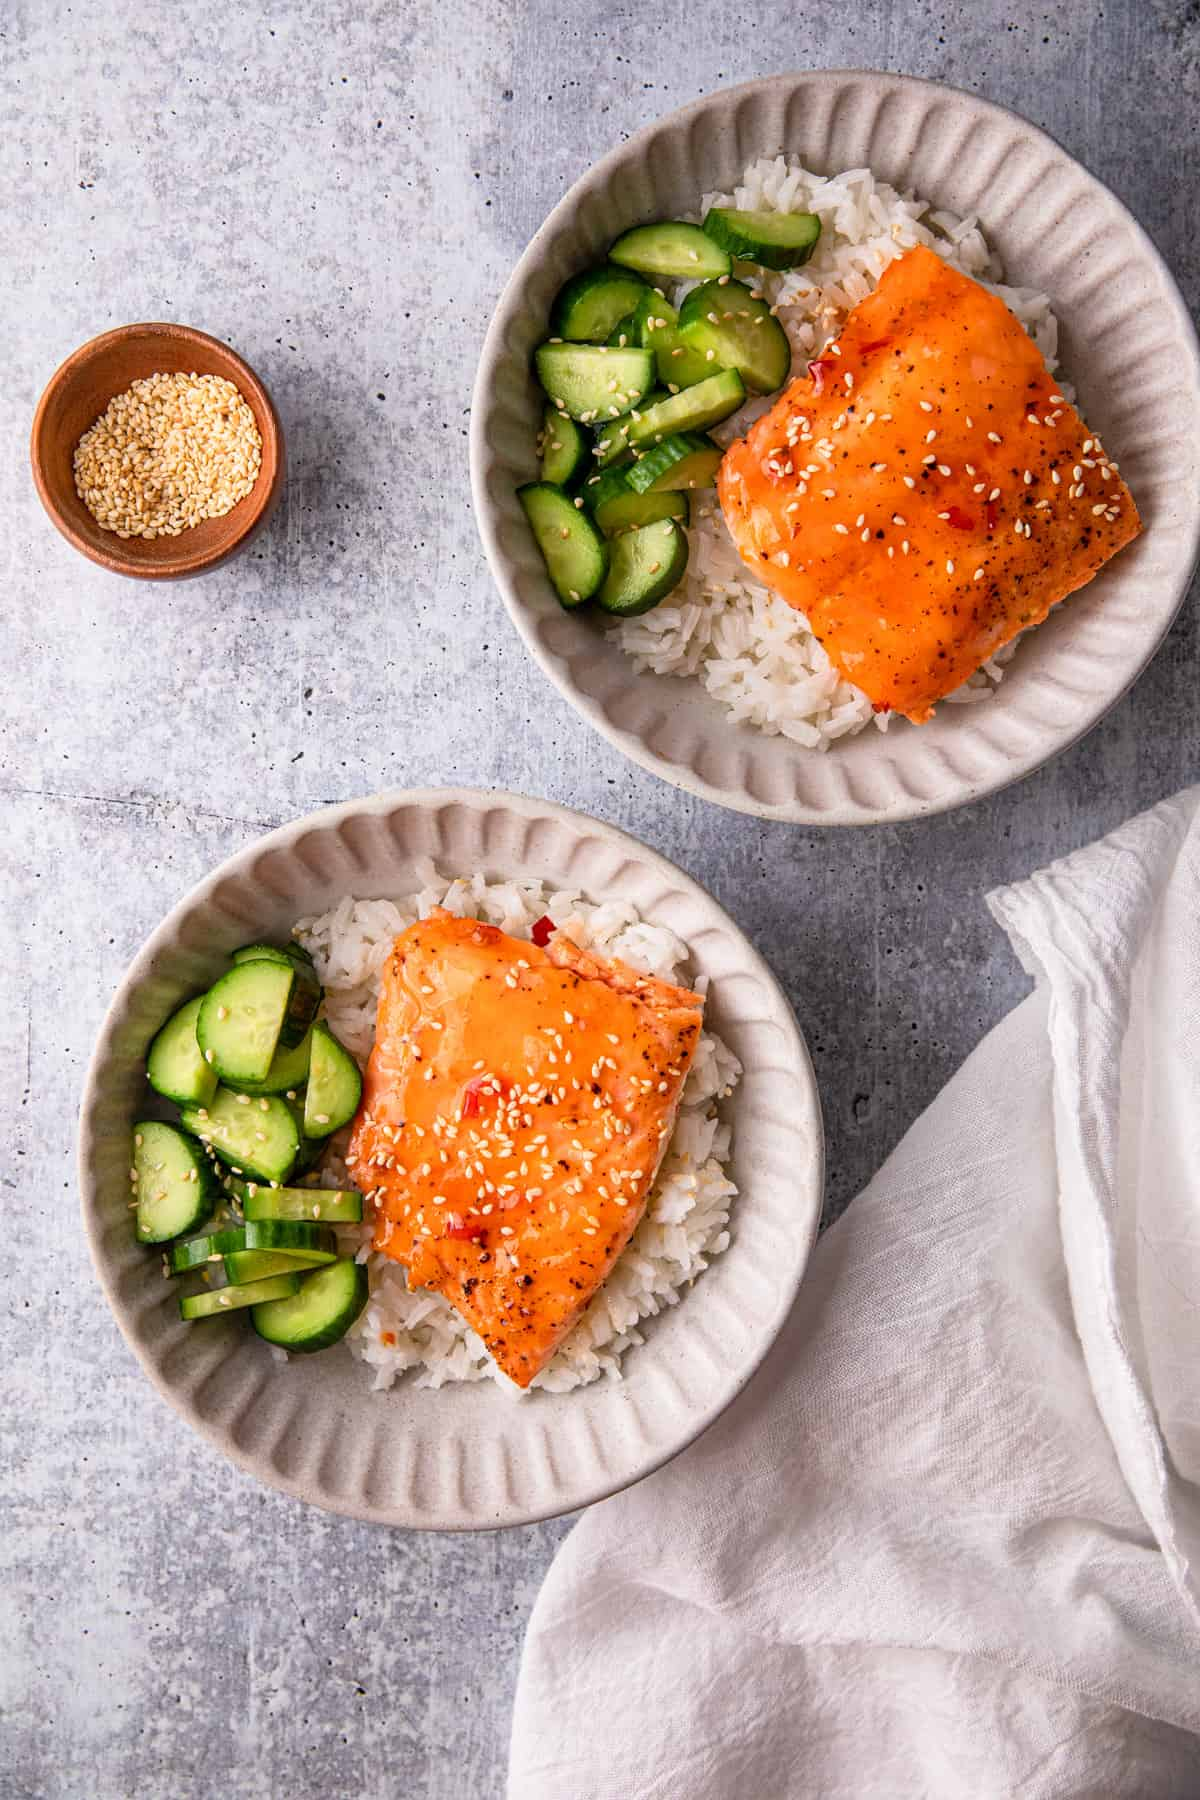 two bowls of sweet chili salmon over rice with cucumbers.